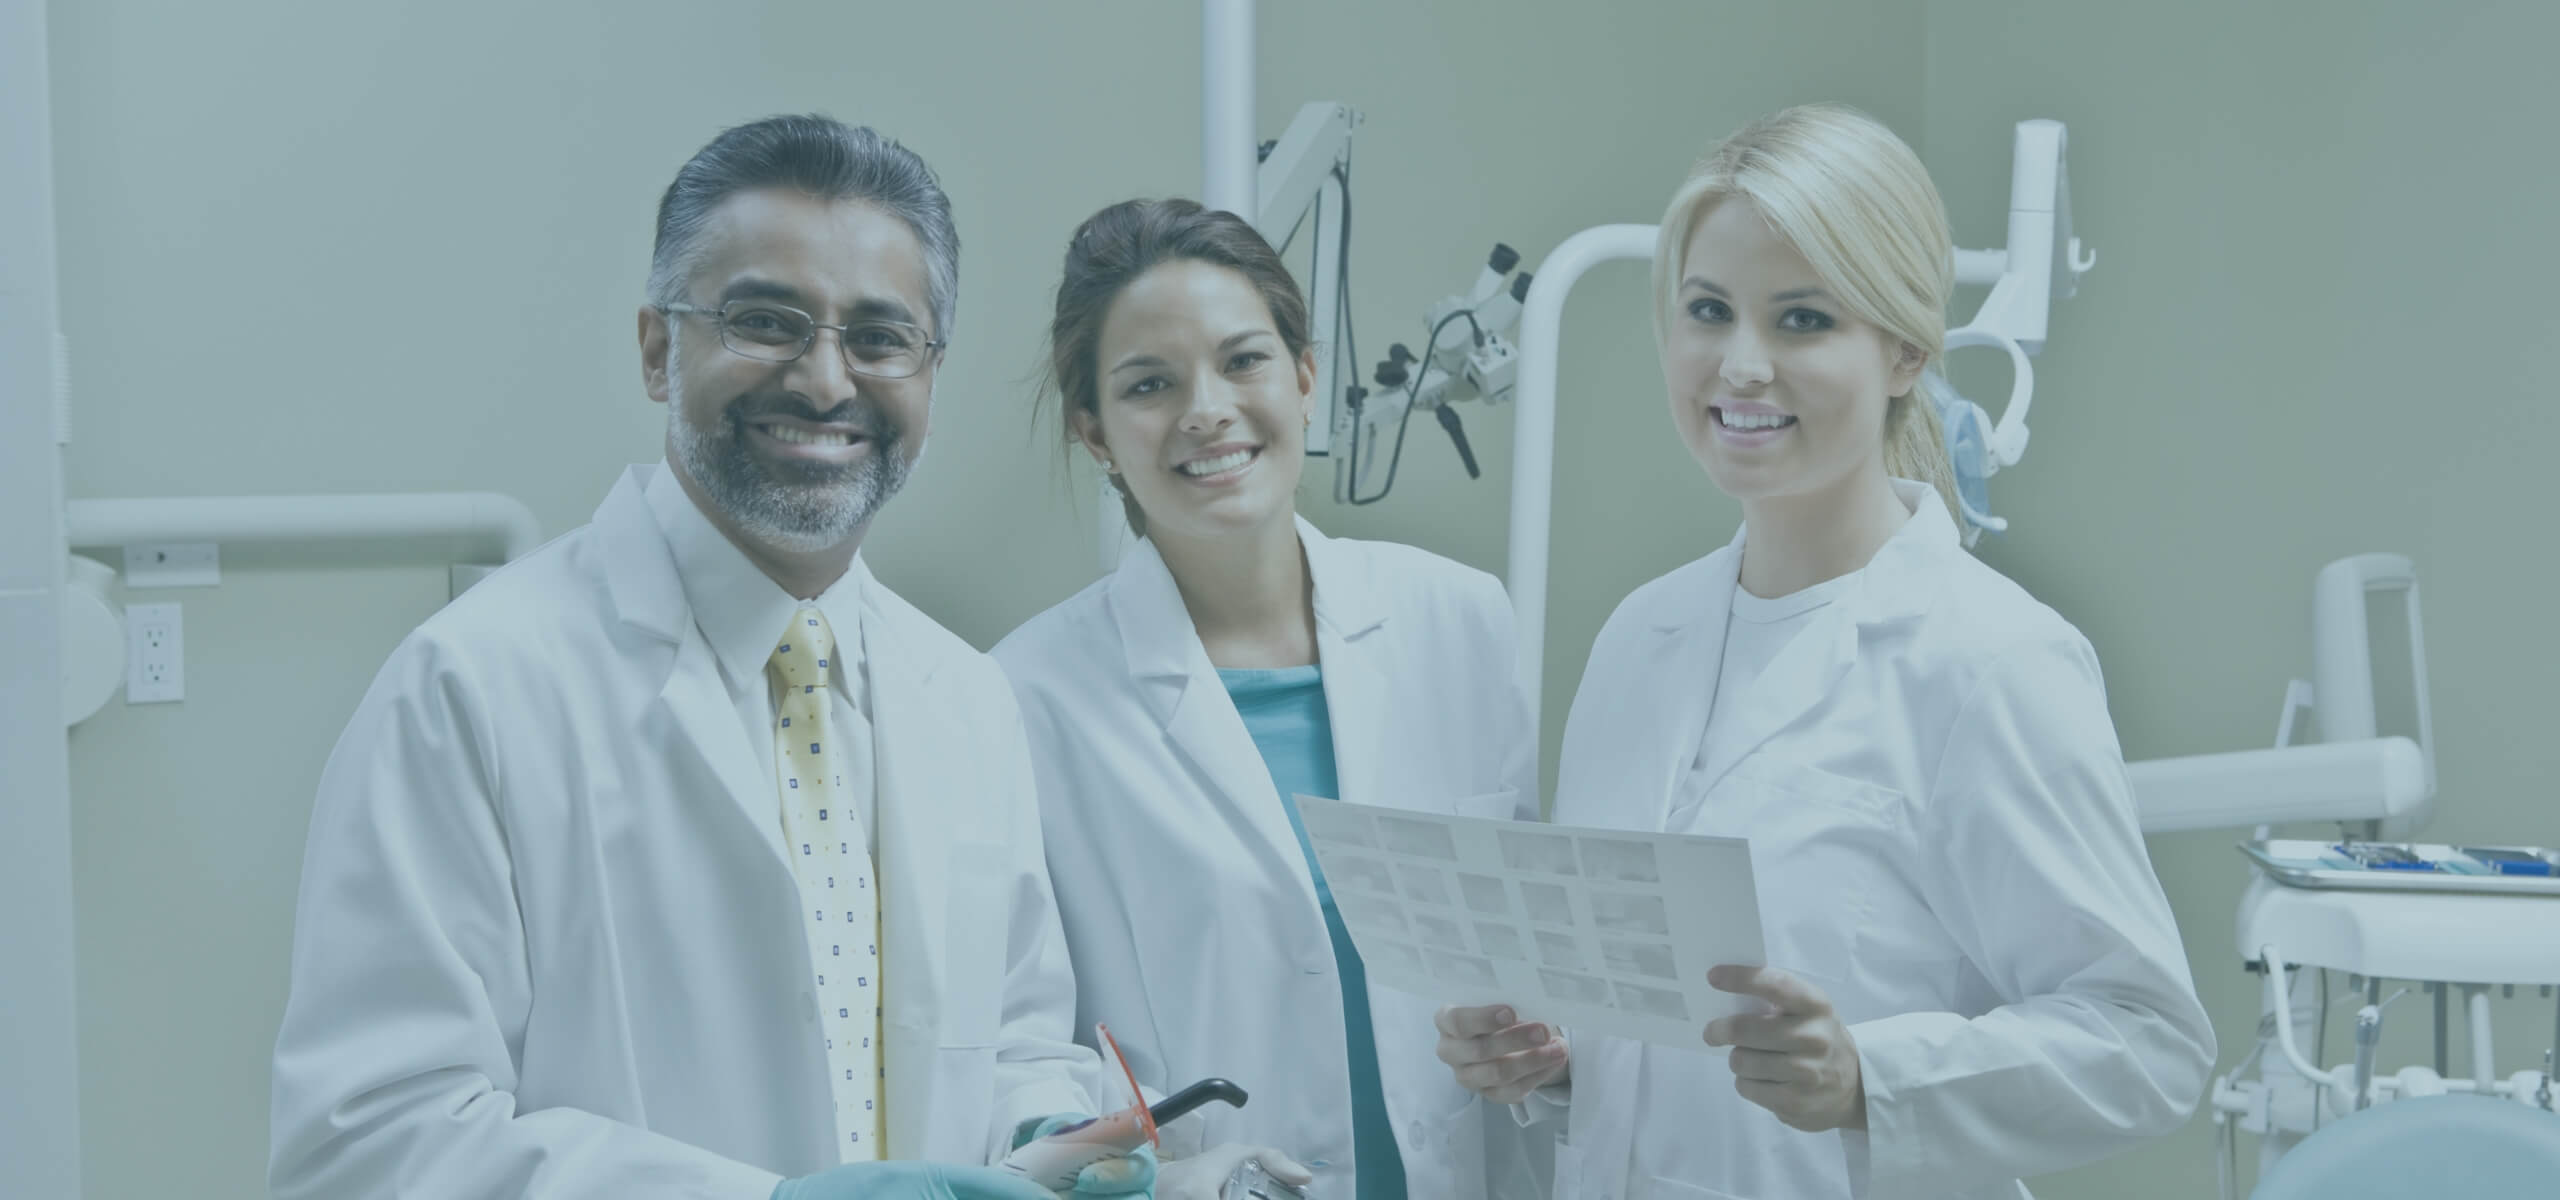 Dentist and two female dental assistants smiling at the camera